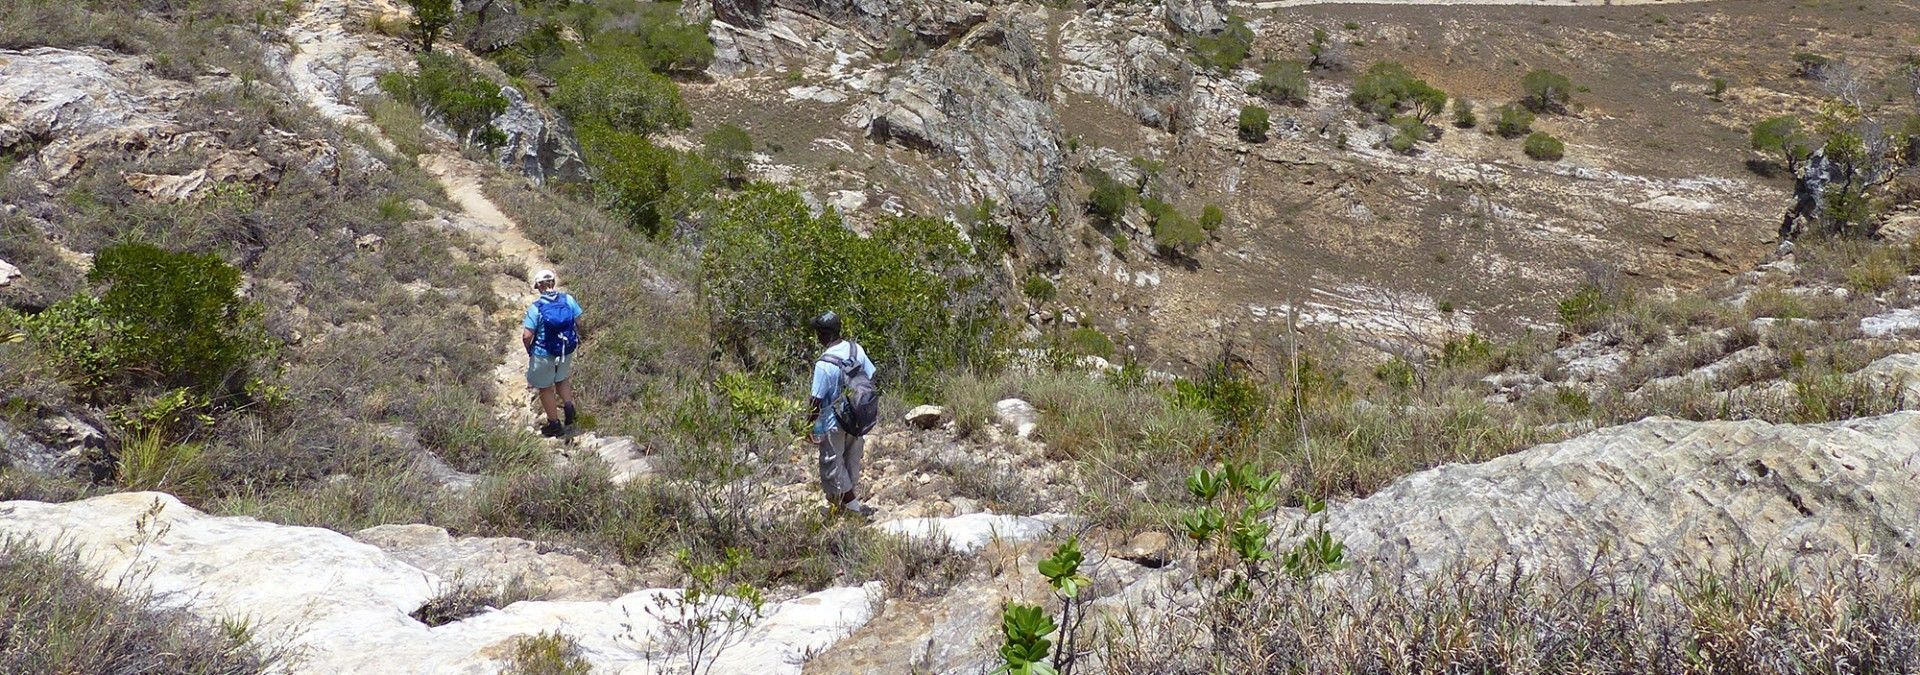 Trekking_mountain_path_Madagascar.jpg